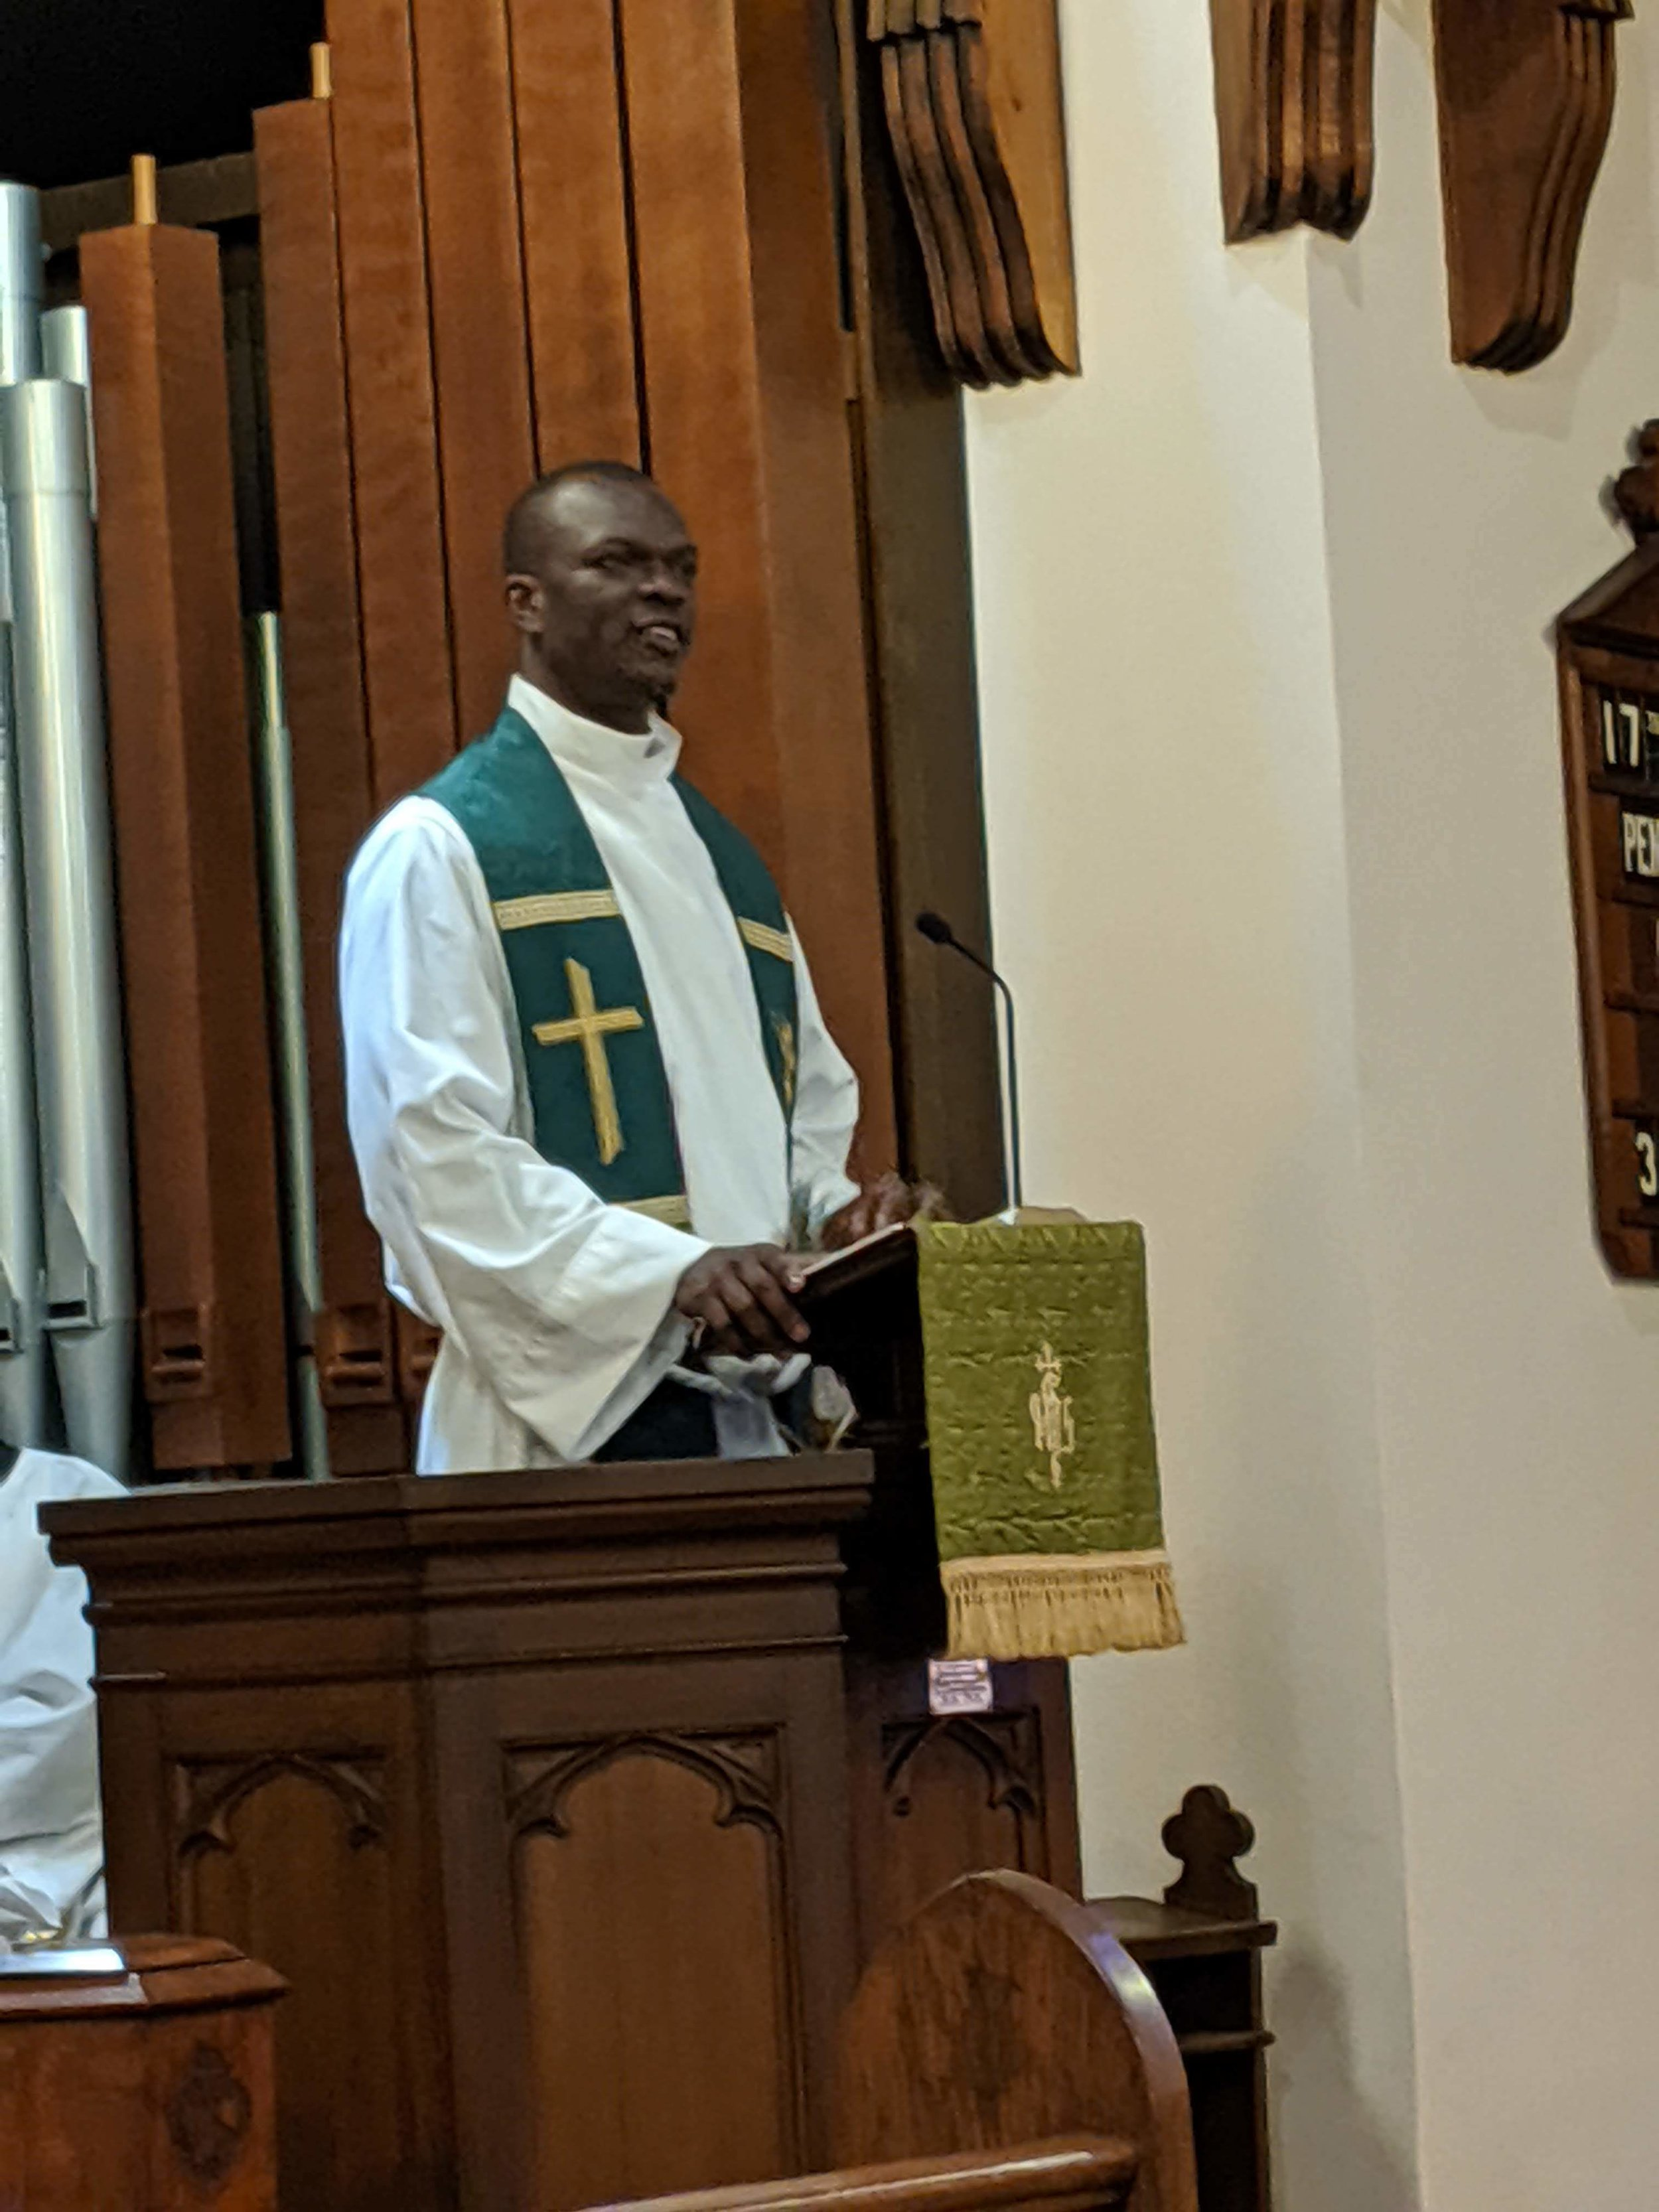 - On Sunday October 6, 2019, we were blessed to have Reverend Fred Ochieng Onyango as our guest preacher. Rev. Fred is an ordained priest of the Anglican Diocese of Maseno South in Kenya.He preached on the Gospel of Luke 17: 1-19.Click here for his sermon:Rev. Fred Onyango